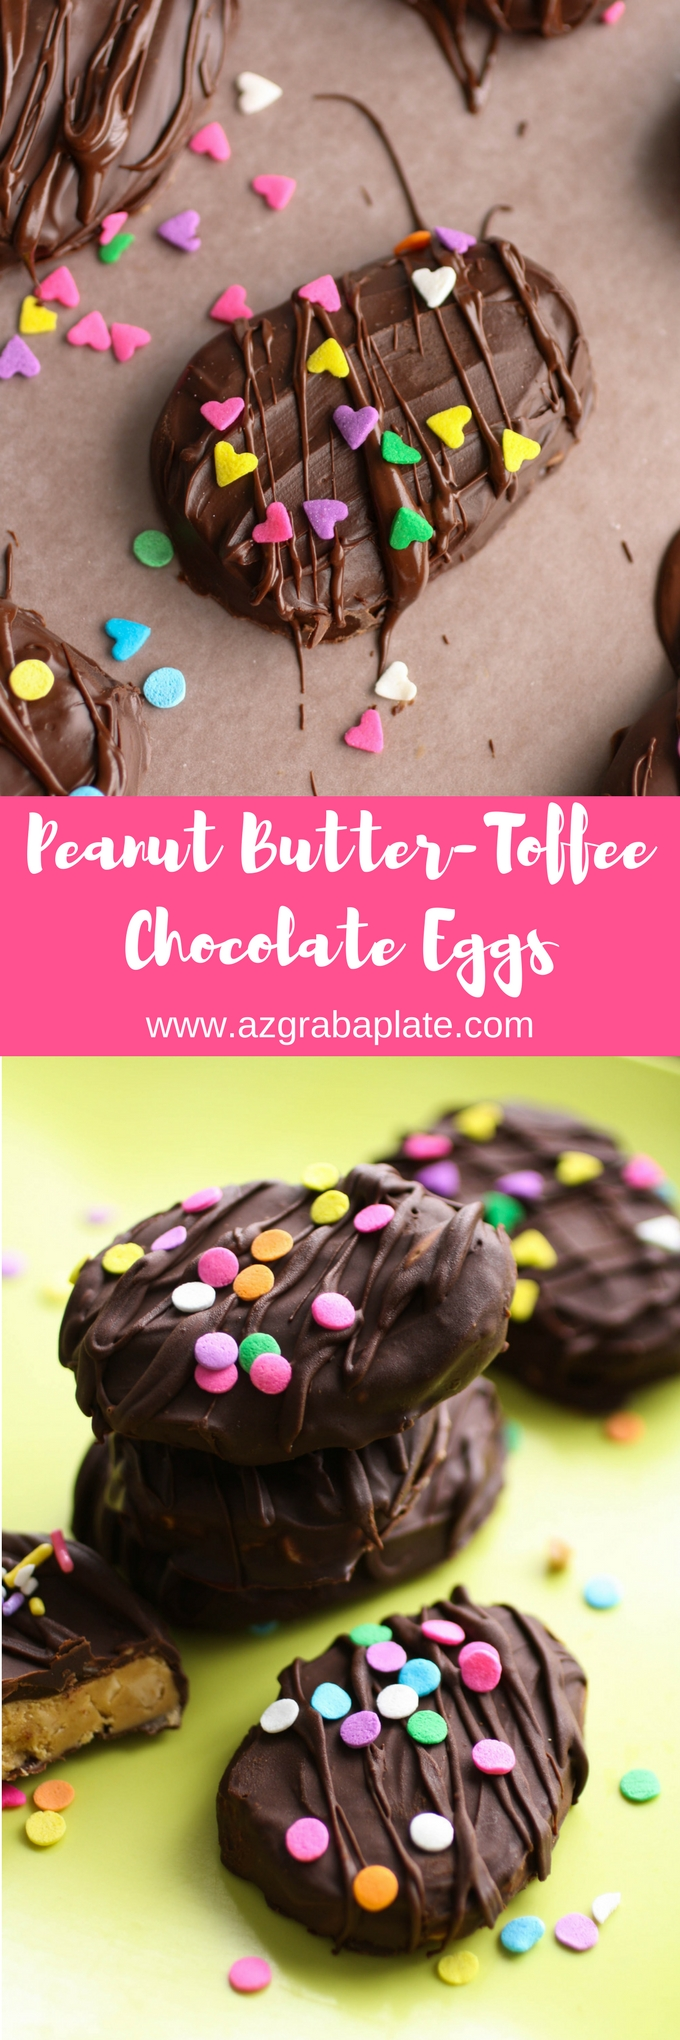 Peanut Butter-Toffee Chocolate Eggs are fun to share! You might also want to keep a few tucked in your freezer to enjoy yourself!